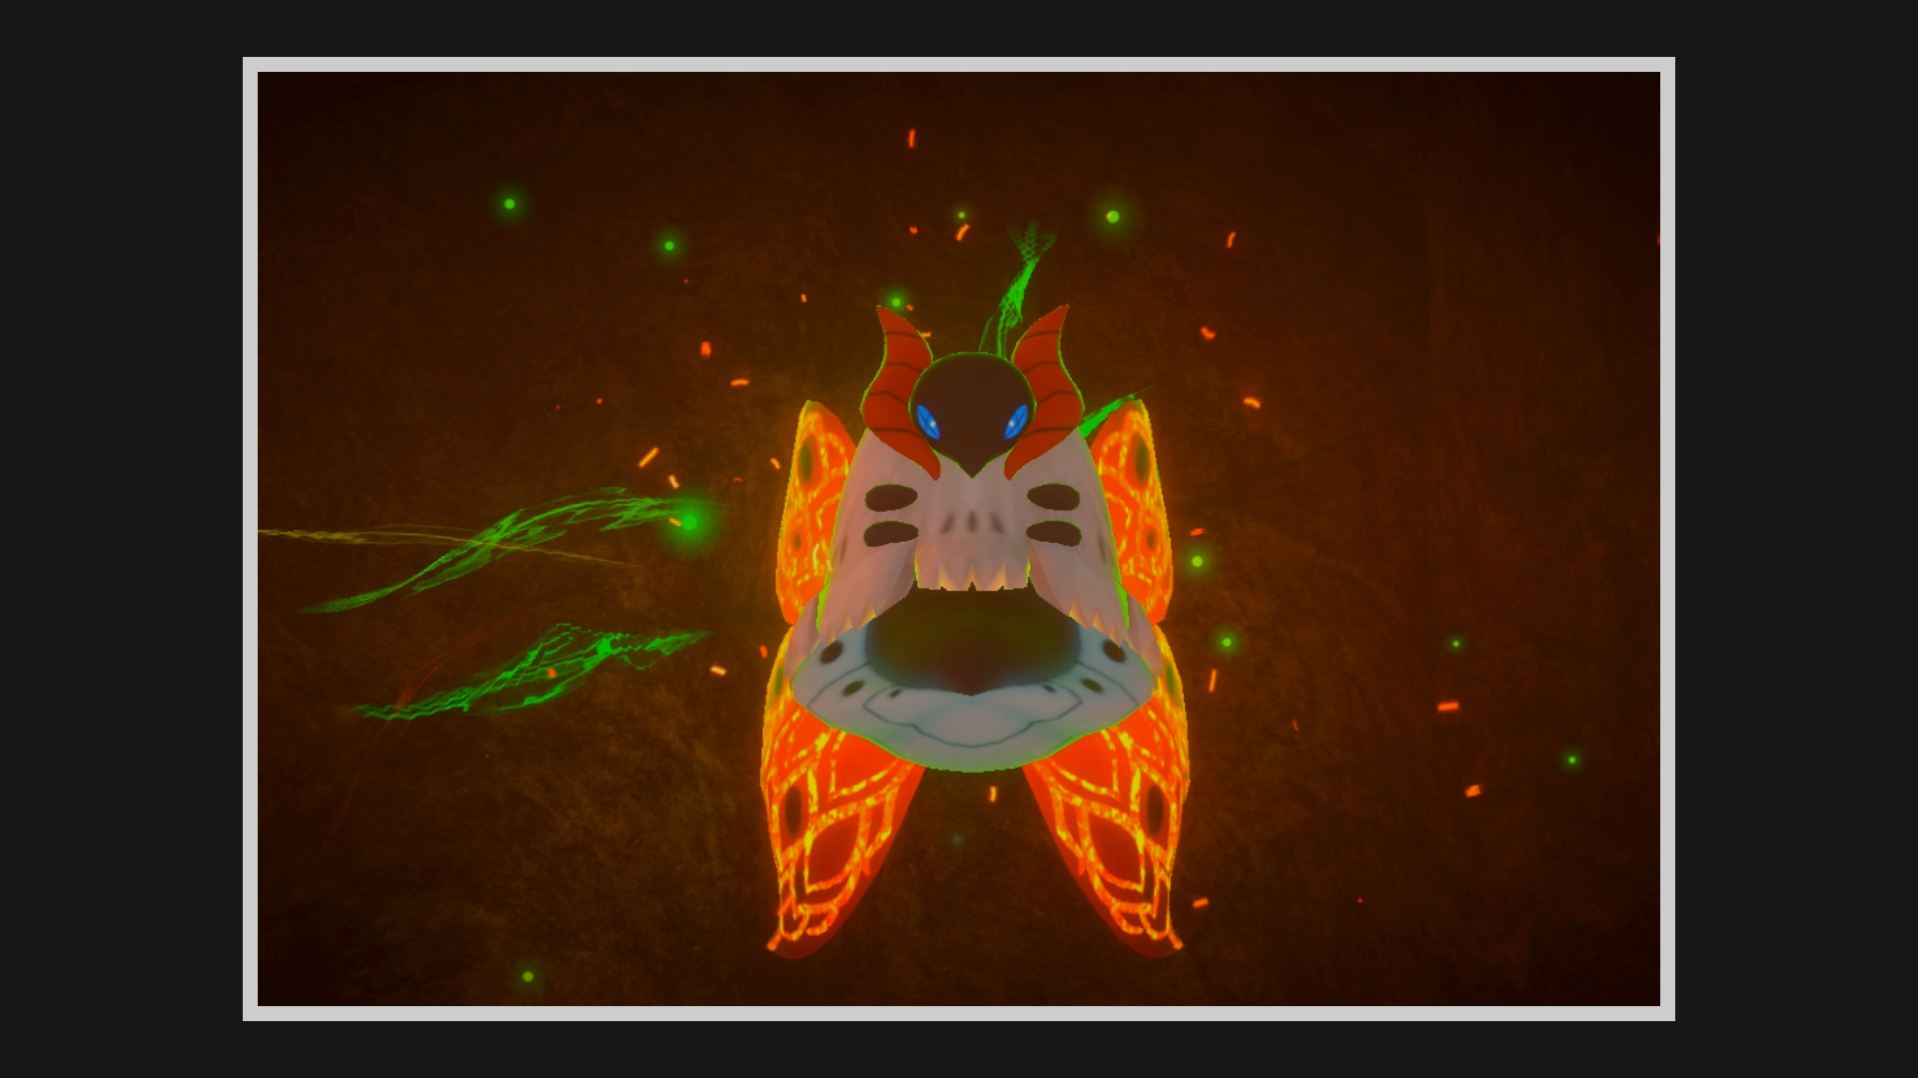 A Volcarona flies with a green glow around it